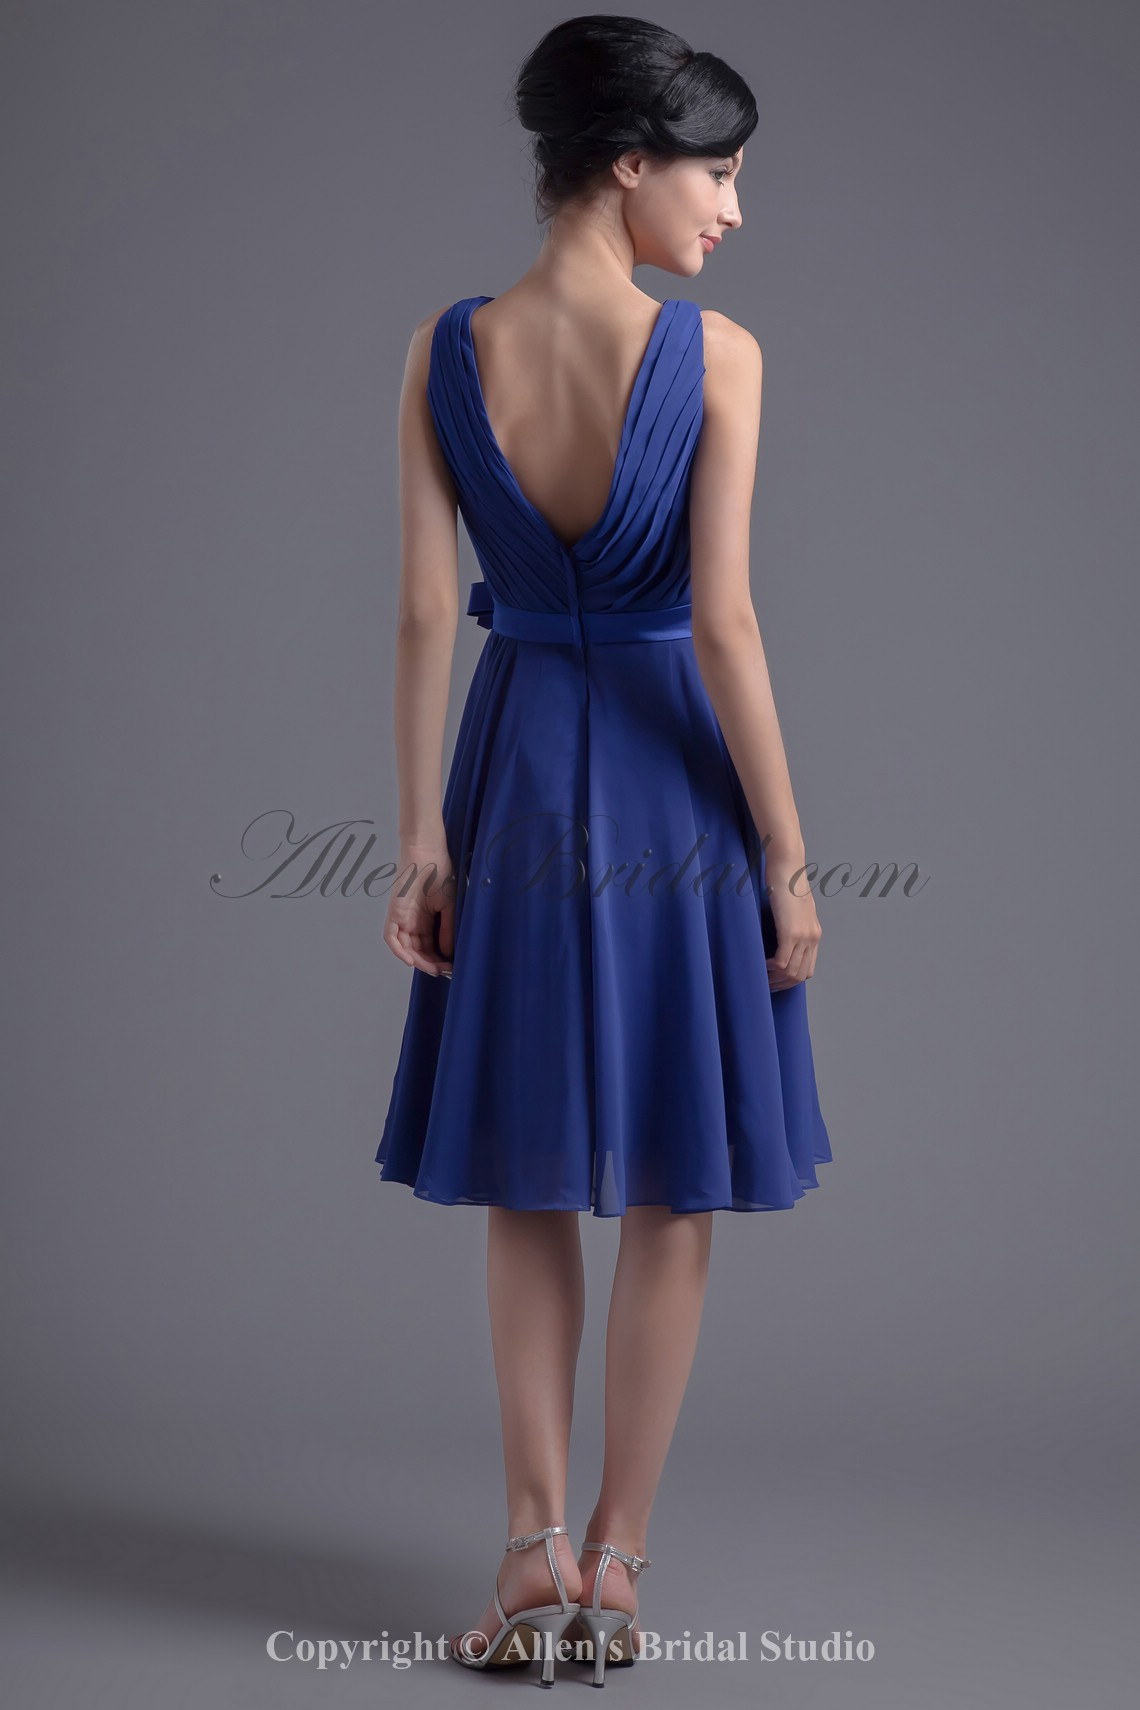 /7-56/chiffon-v-neckline-a-line-knee-length-hand-made-flowers-cocktail-dress.jpg